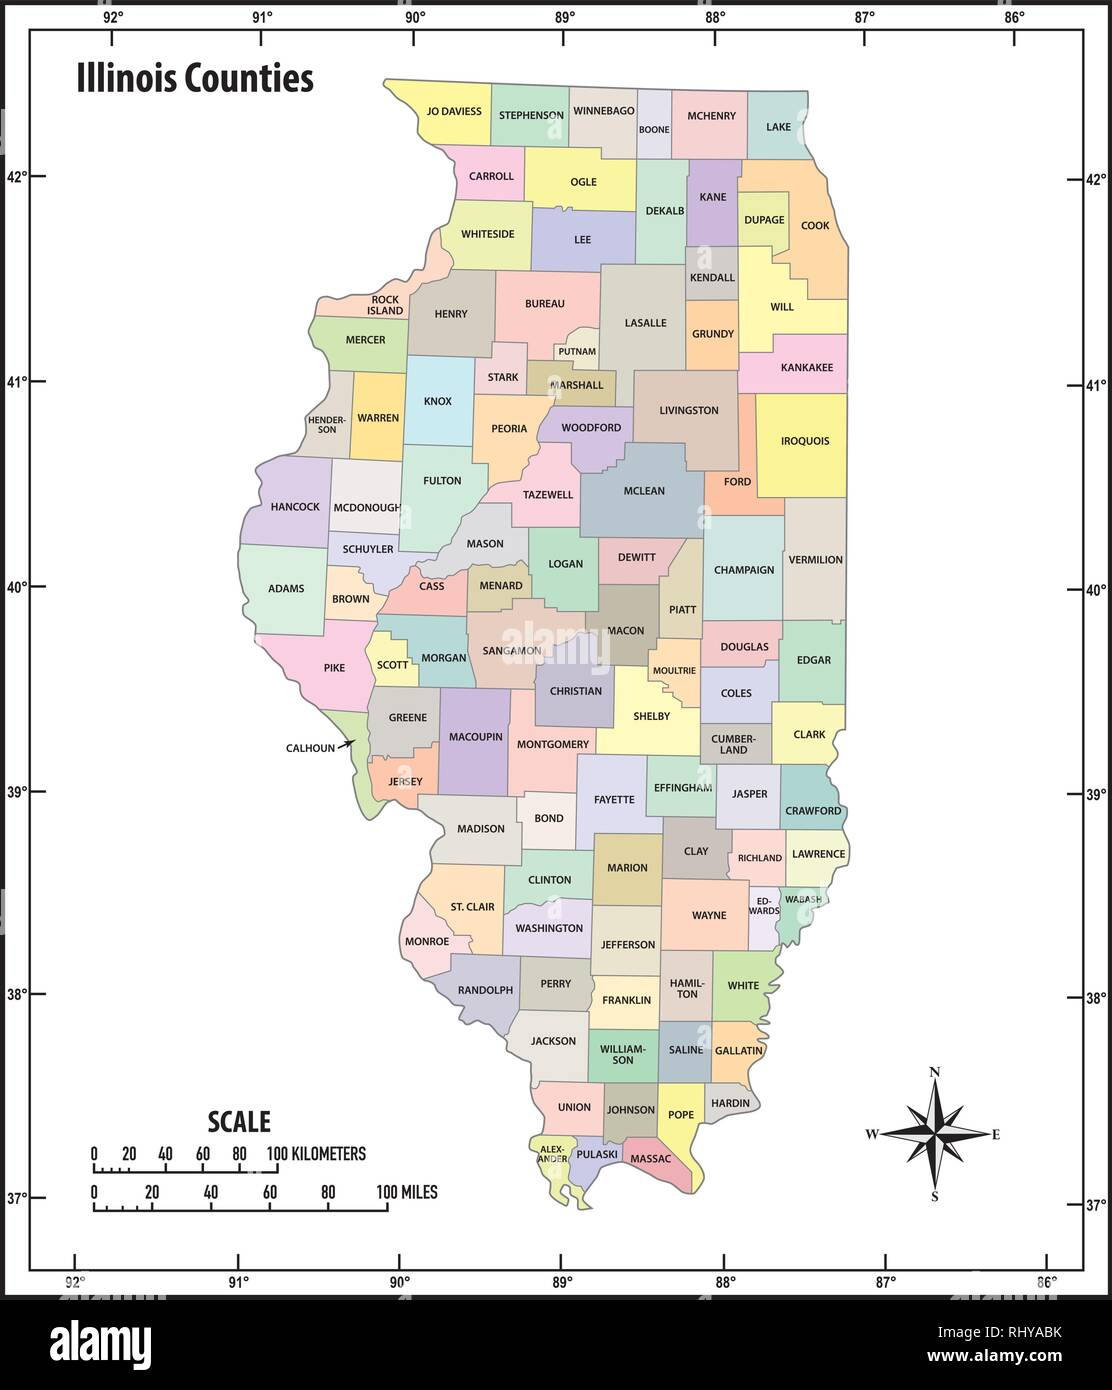 Illinois state outline administrative and political vector map in ...